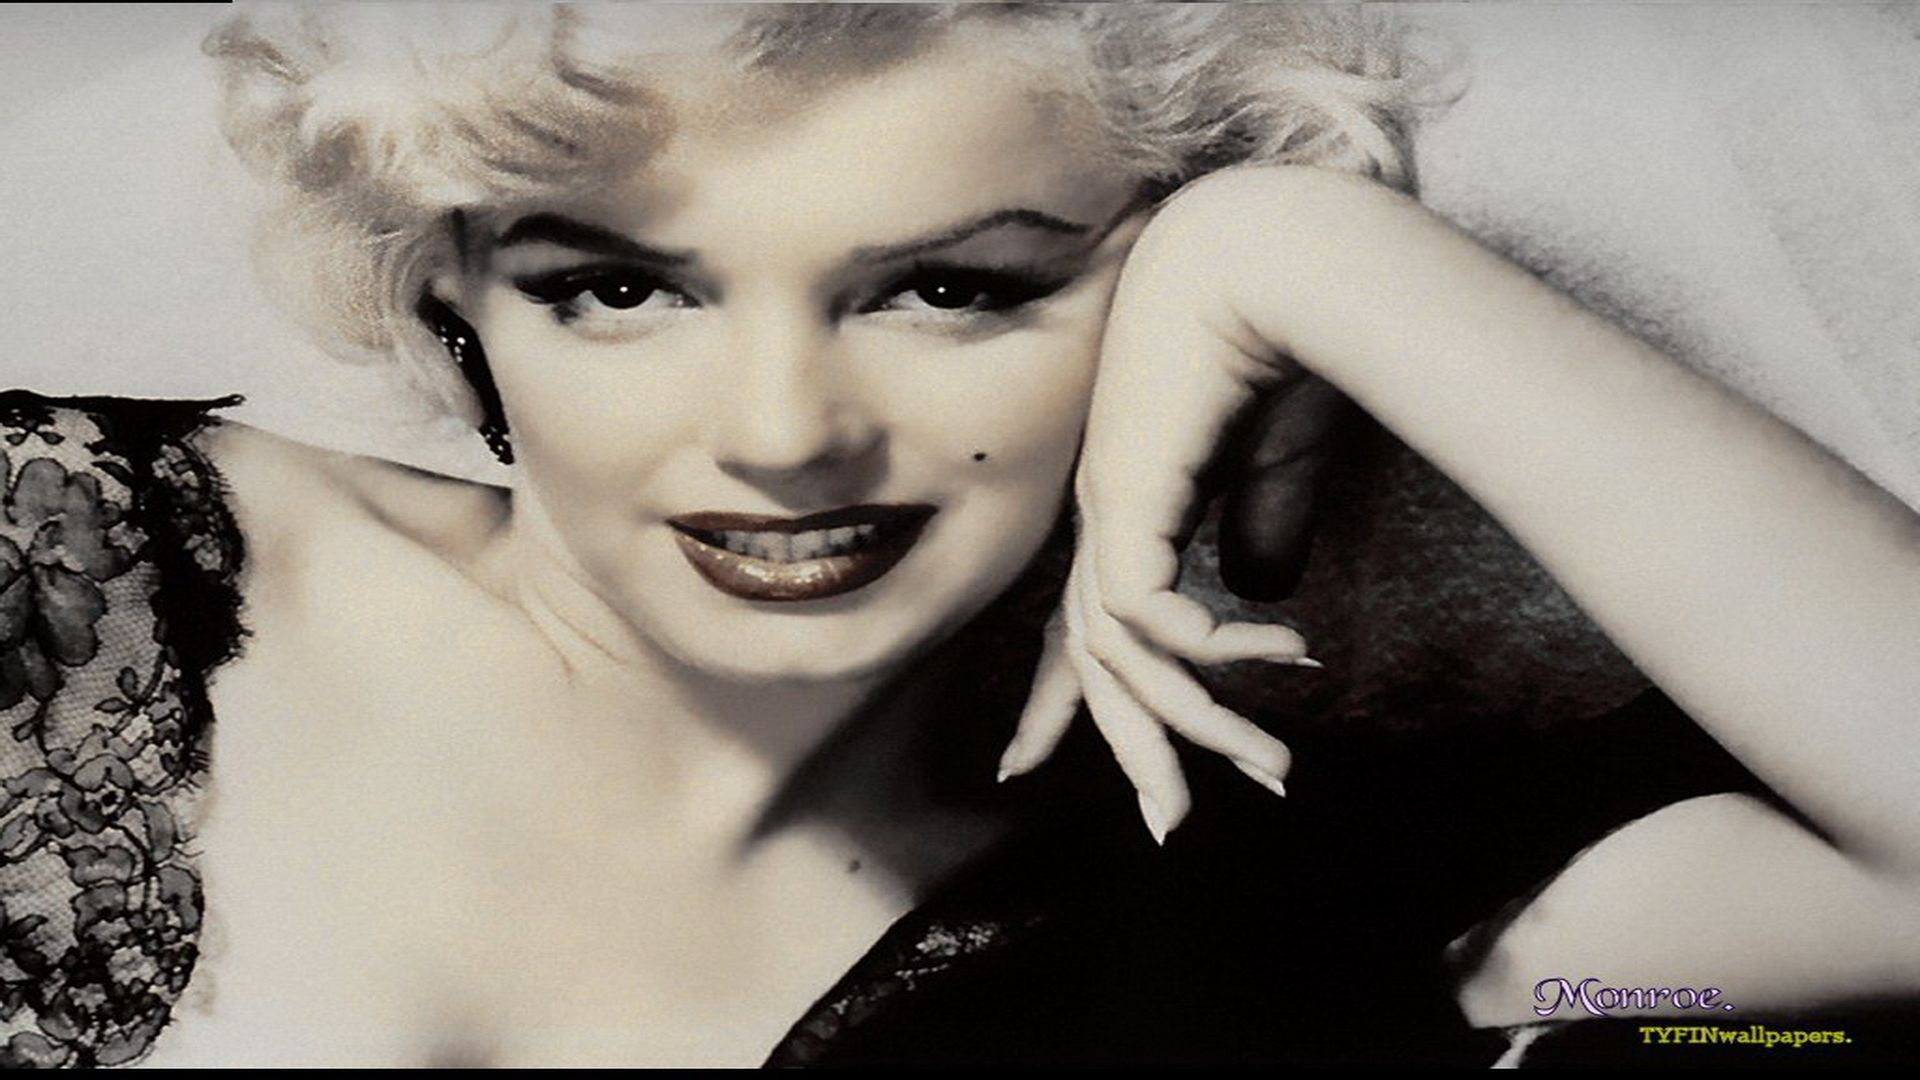 marilyn monroe wallpapers Marilyn Monroe Wallpapers, HD